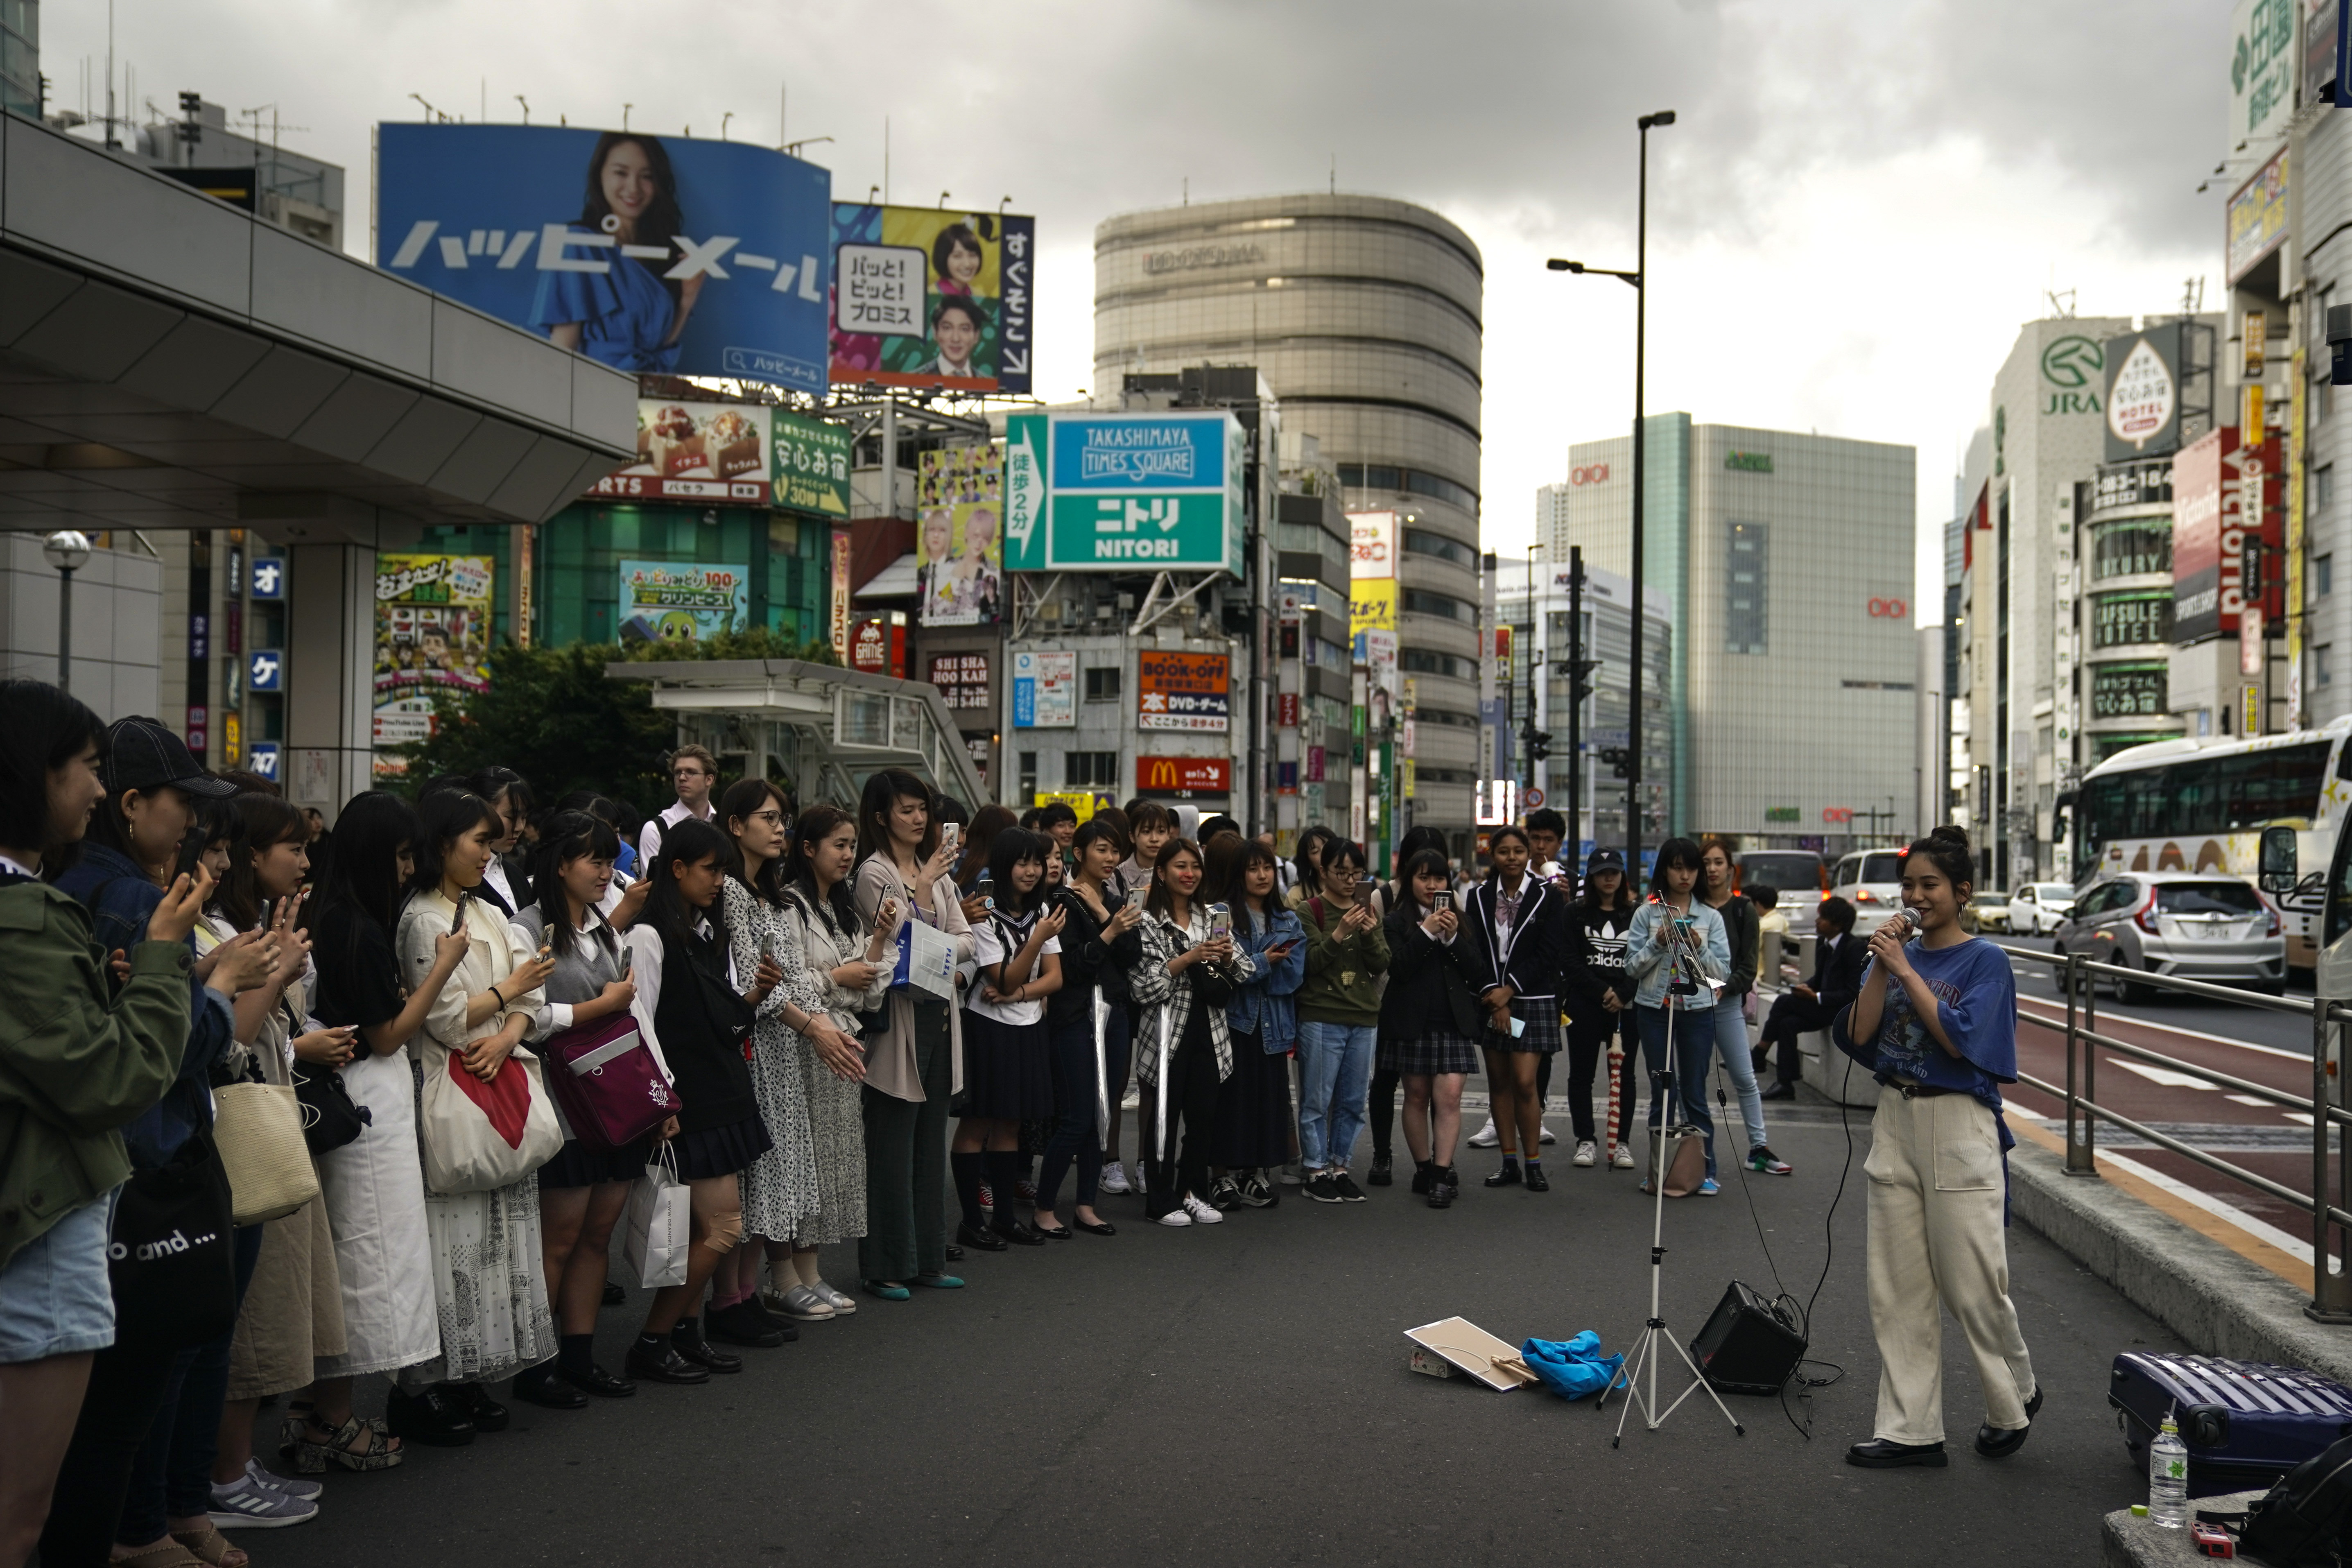 A street performer sings as she is surrounded by spectators outside the Shinjuku Station Monday, May 20, 2019, in Tokyo. (AP Photo/Jae C. Hong)